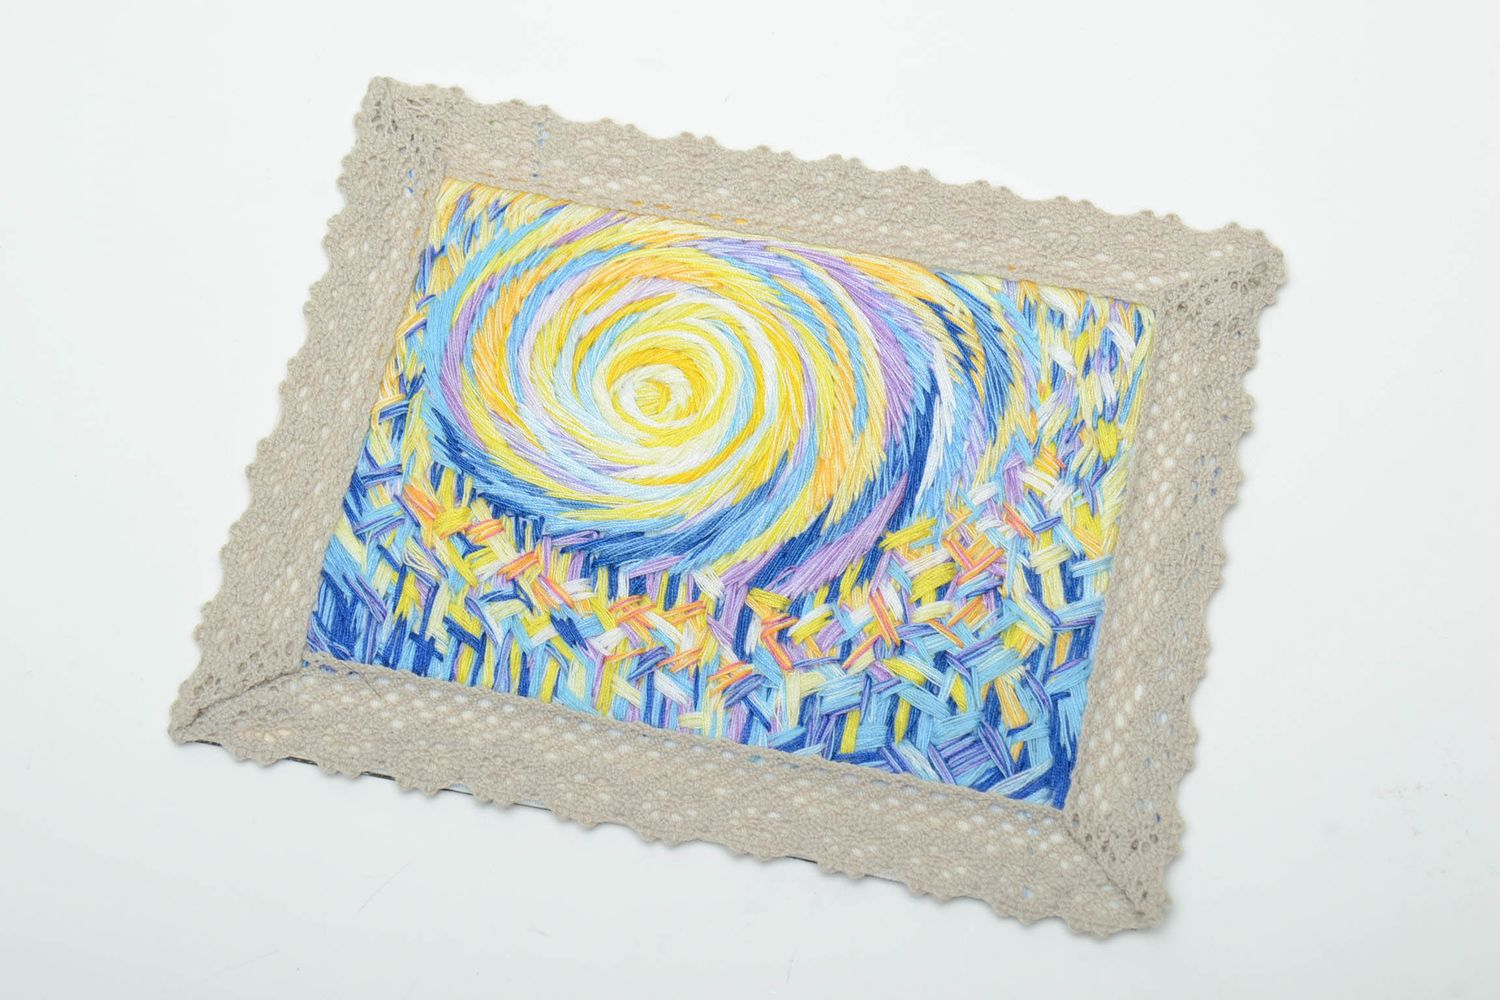 Satin stitch embroidered magnet picture with lace photo 2